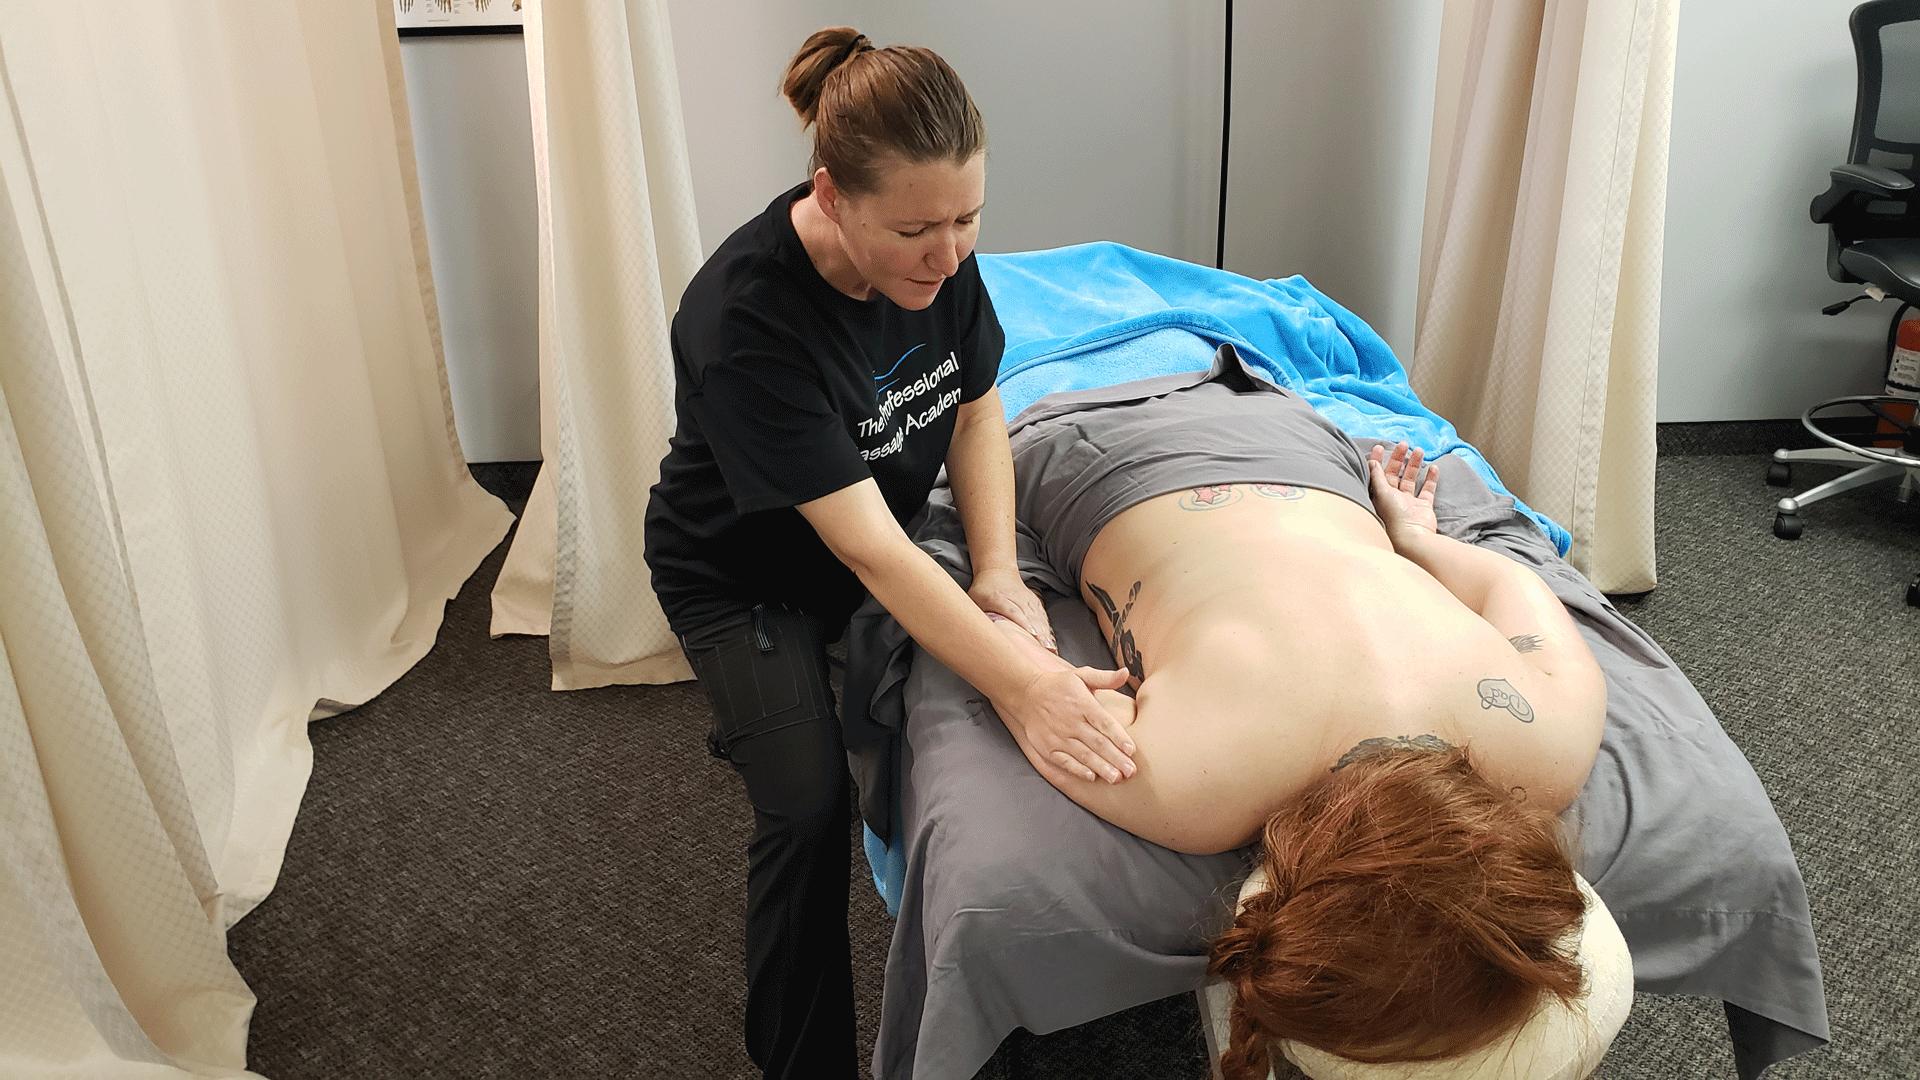 Beginner's Guide To Swedish Massage: Friction